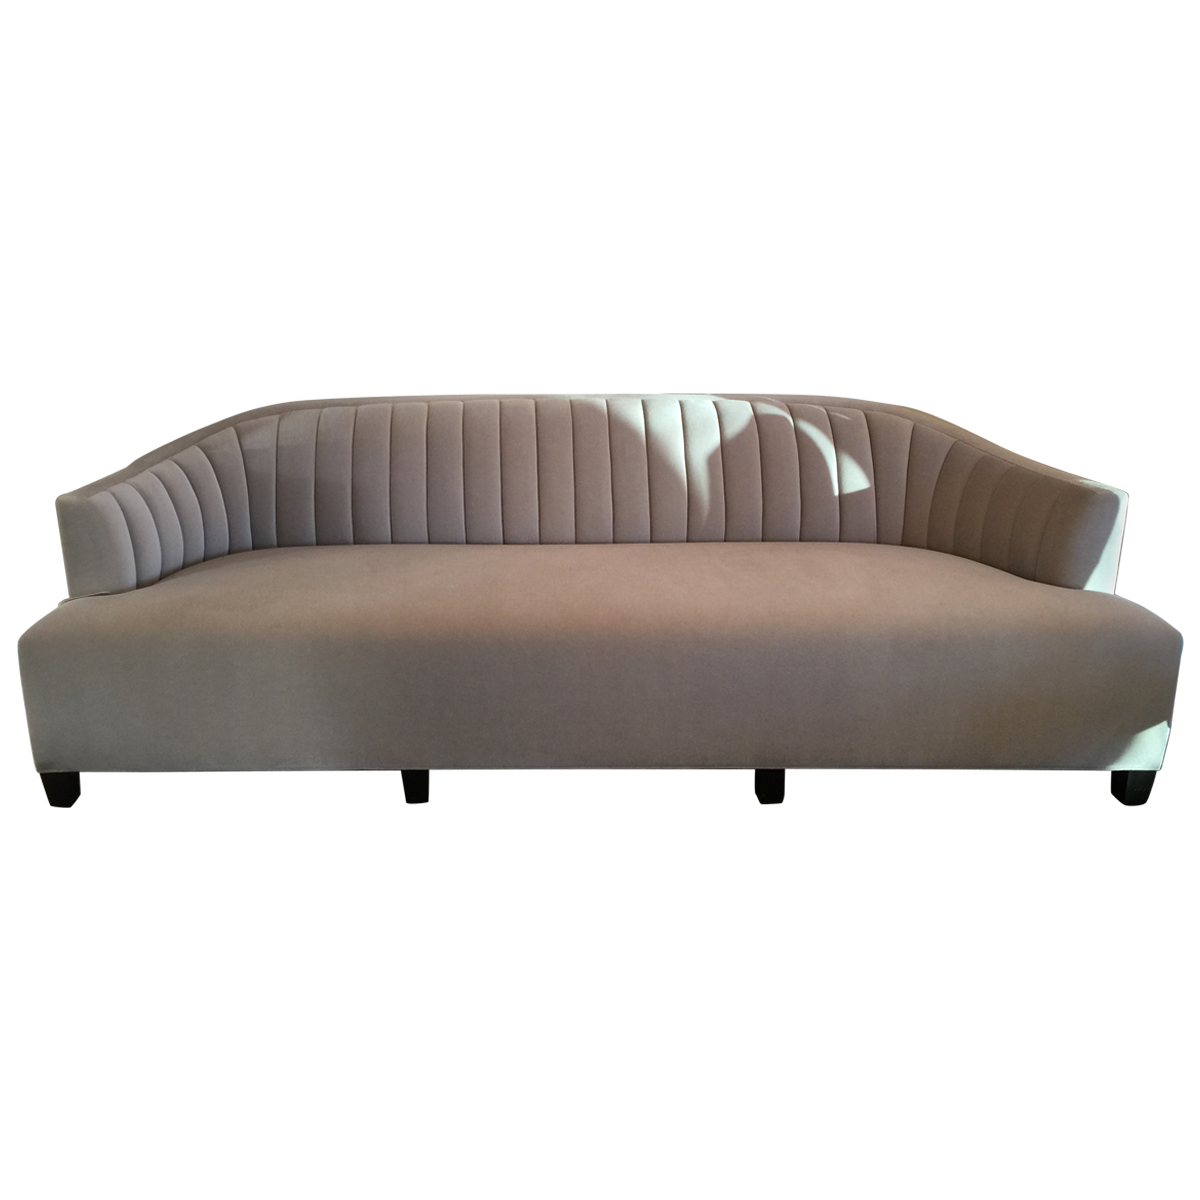 Michael Berman Limited Mariposa Sofa Front View available on Viyet